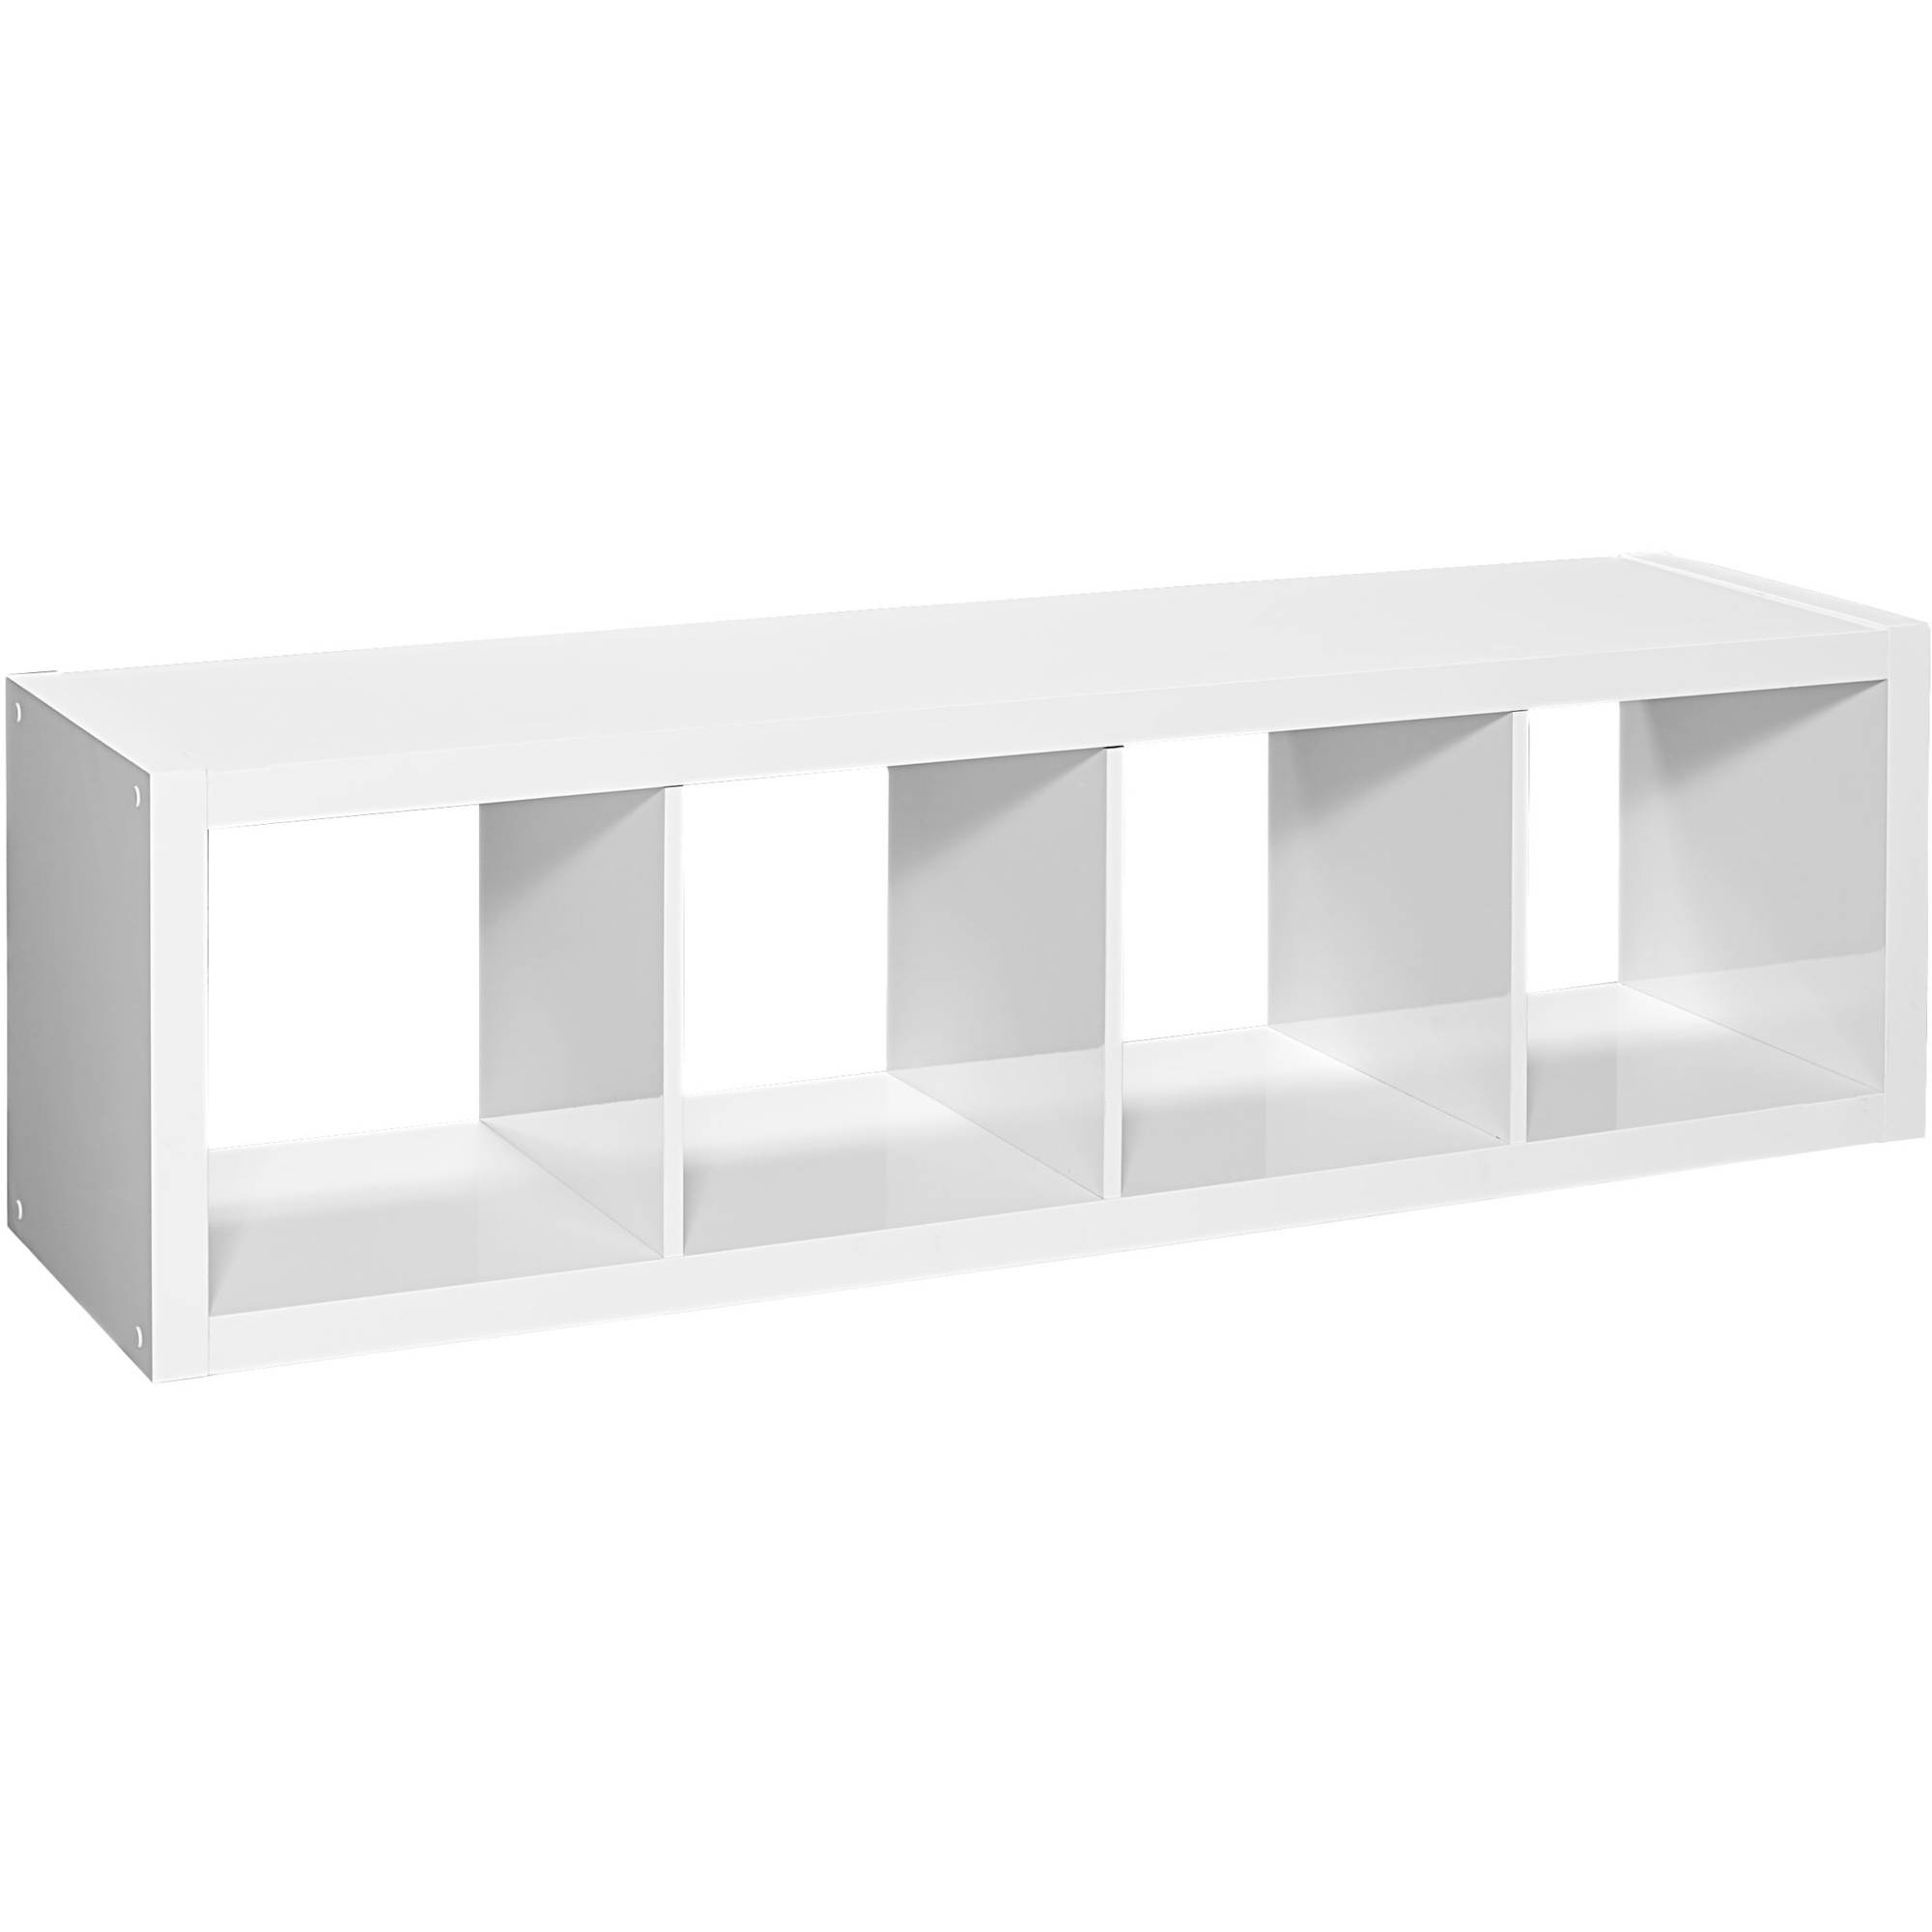 bookshelves market category ladder metal bexley home world white office do bookcase horizontal furniture bookcases xxx